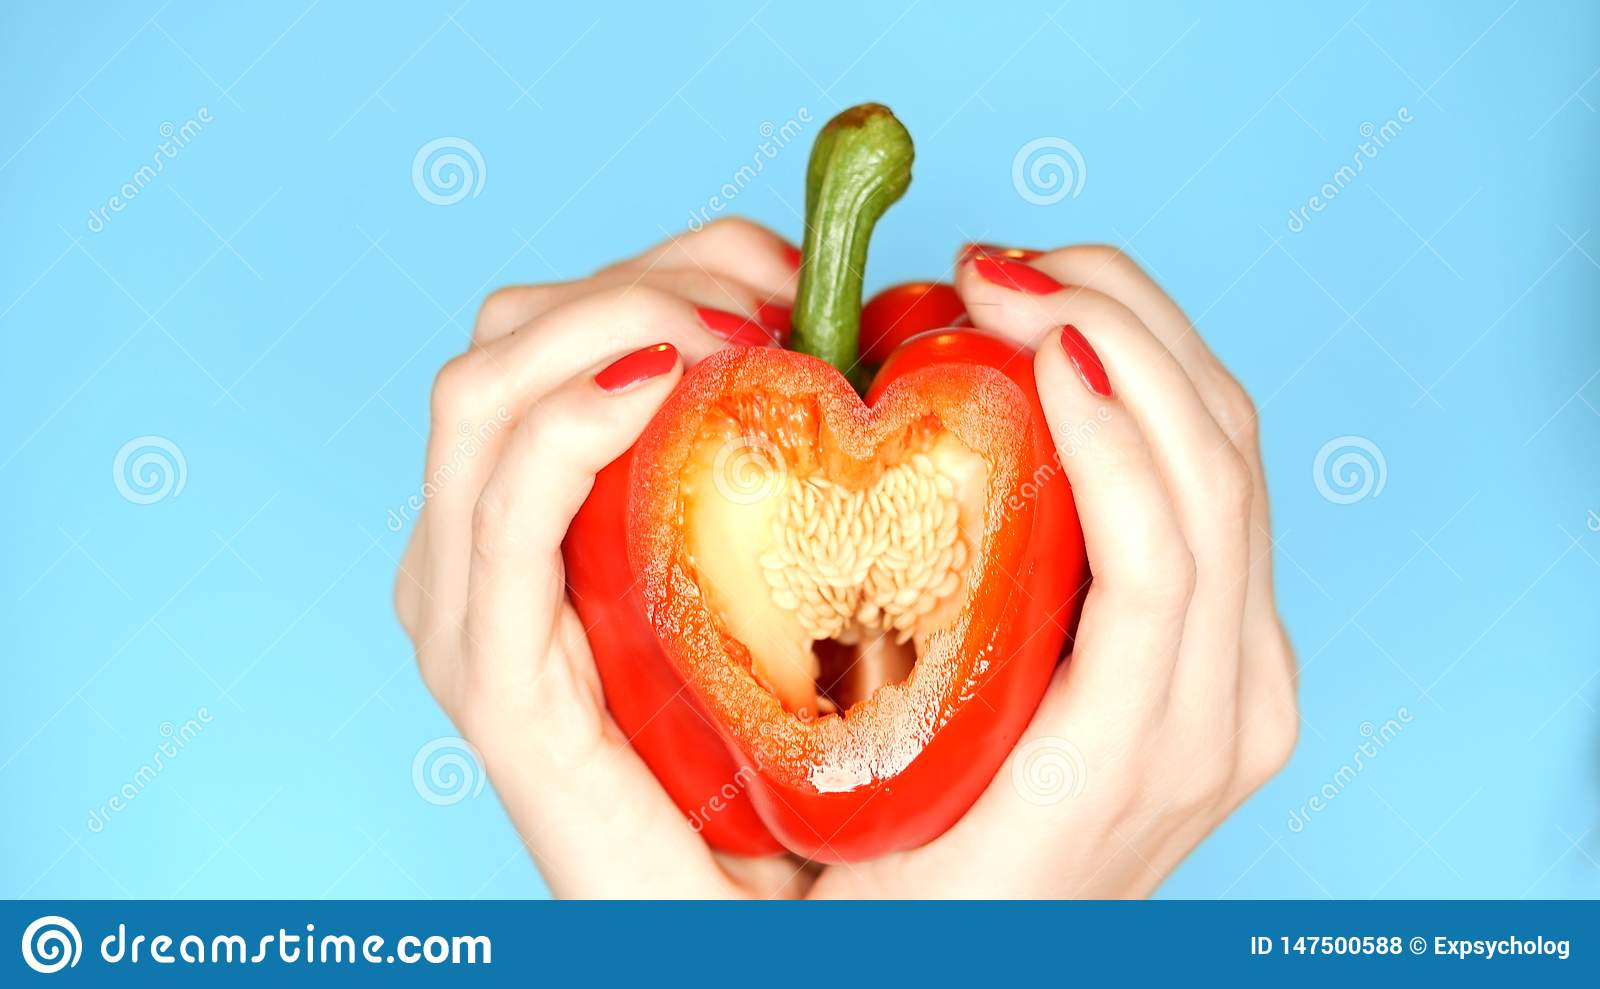 Female hands with red manicure hold red sweet pepper in hand in the form of a heart on a blue background